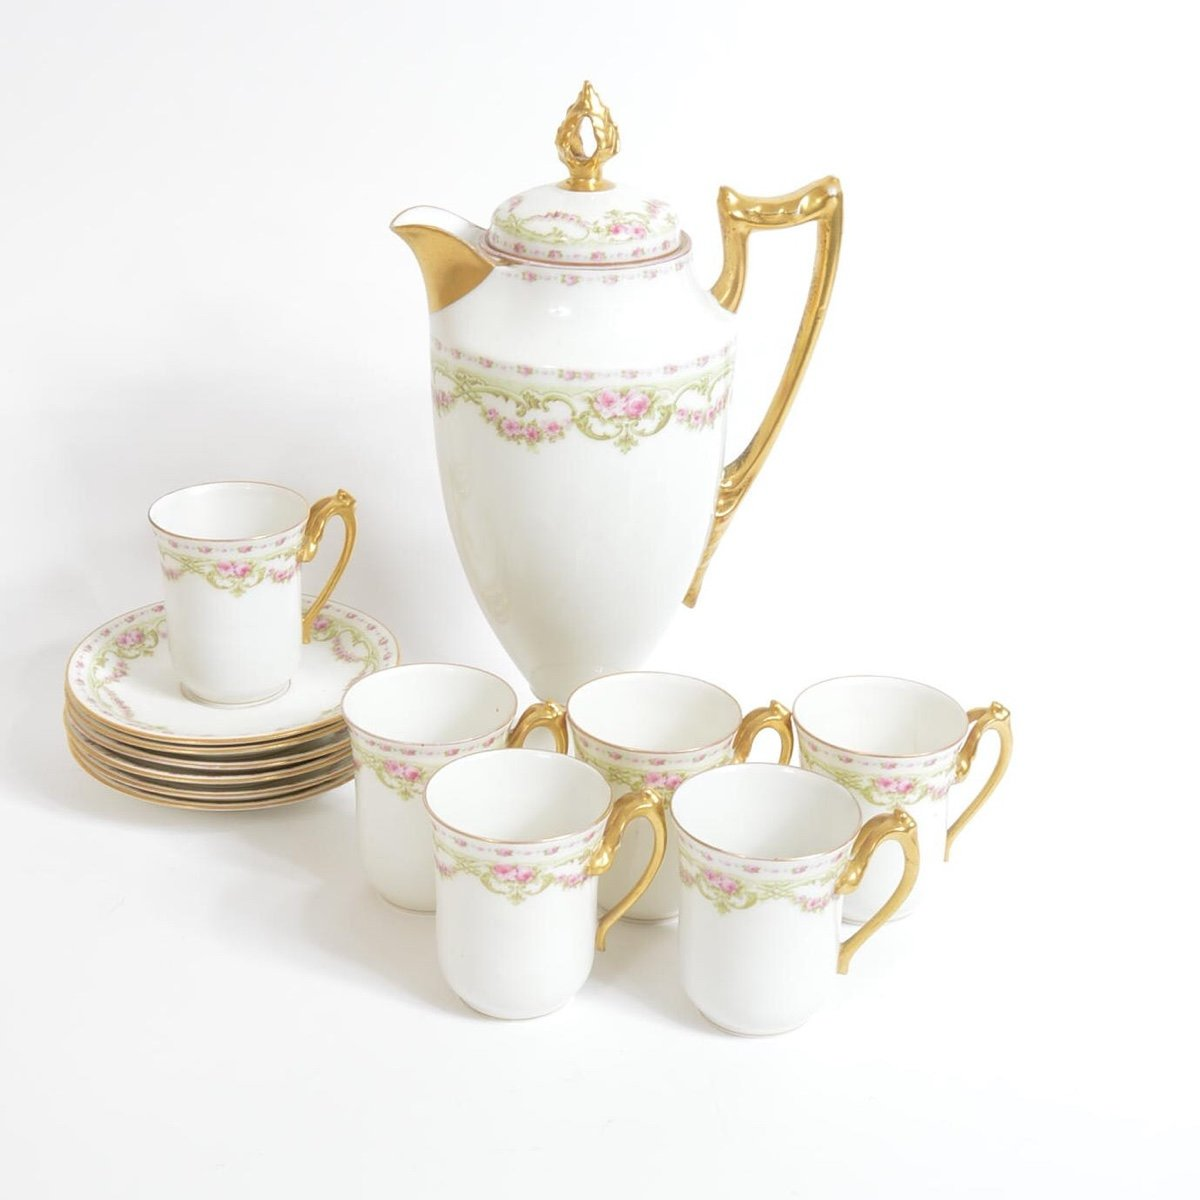 Looking for the individual values of Limoges Coronet Porcelain Tea ...